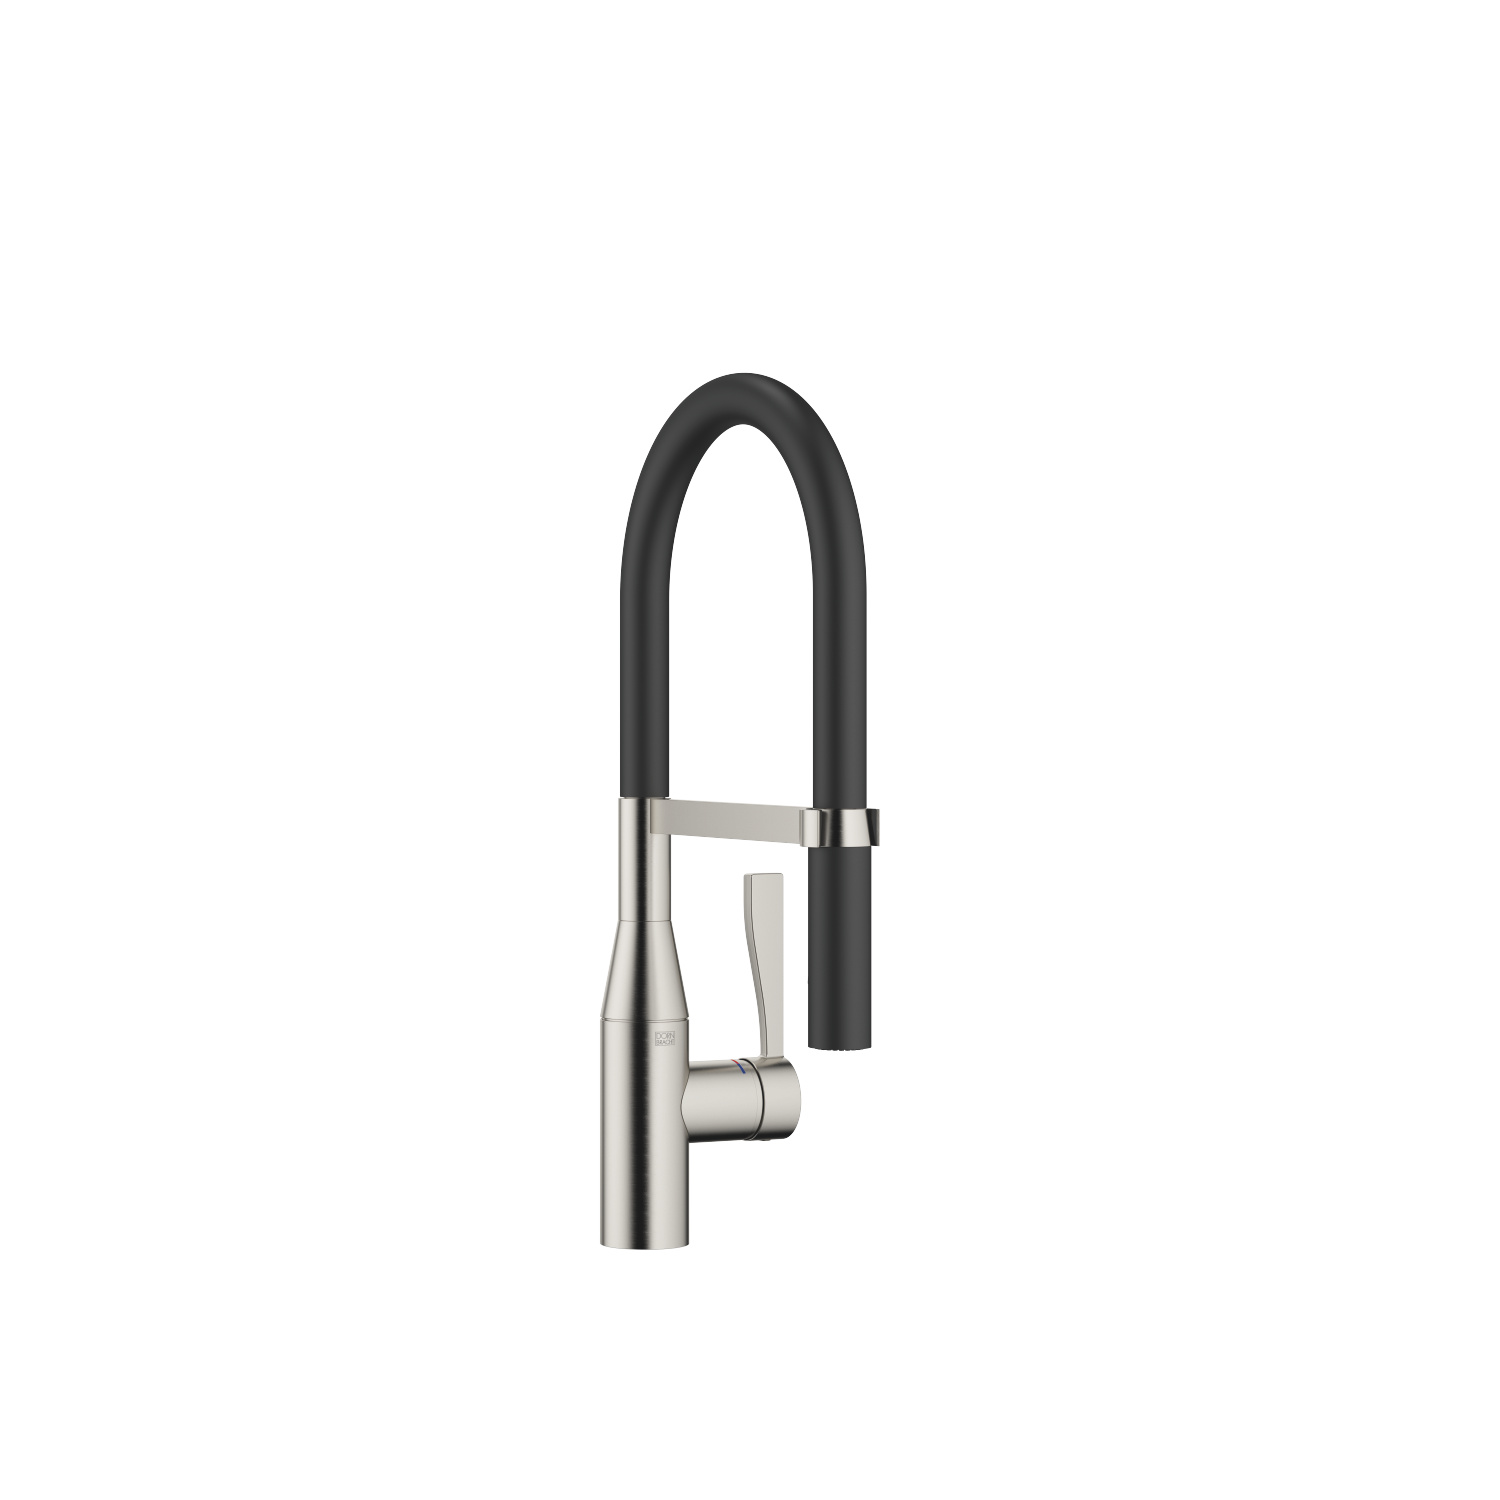 Profi single-lever mixer - platinum matt